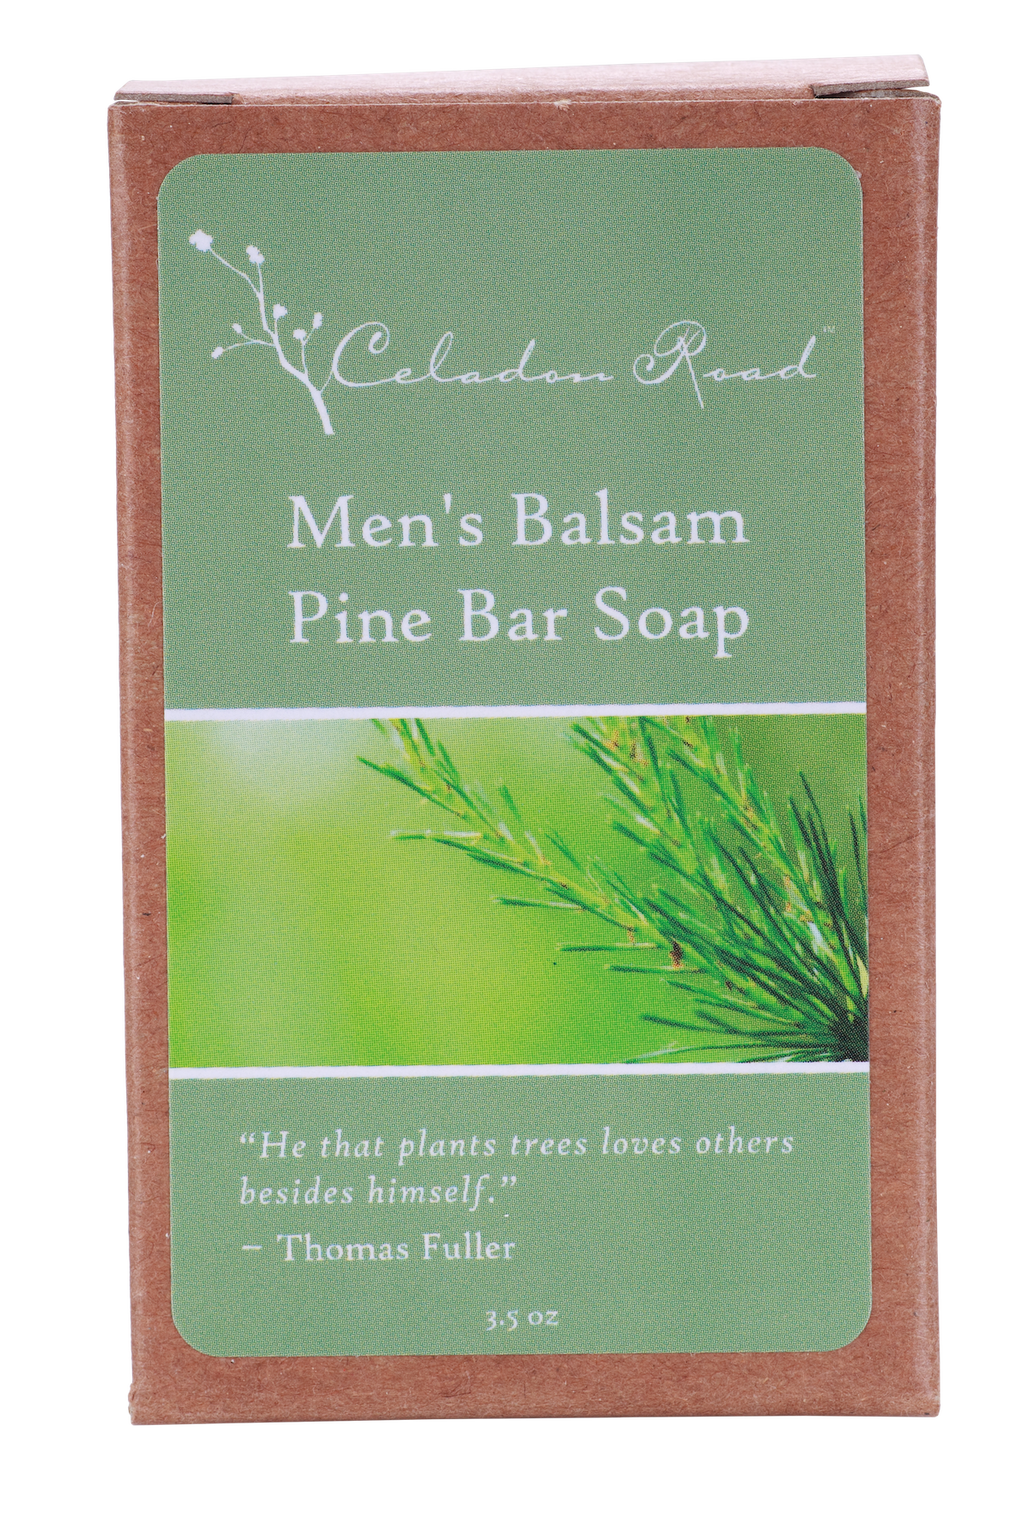 Men's Balsam Pine Bar Soap- Celadon Road- www.celadonroad.com